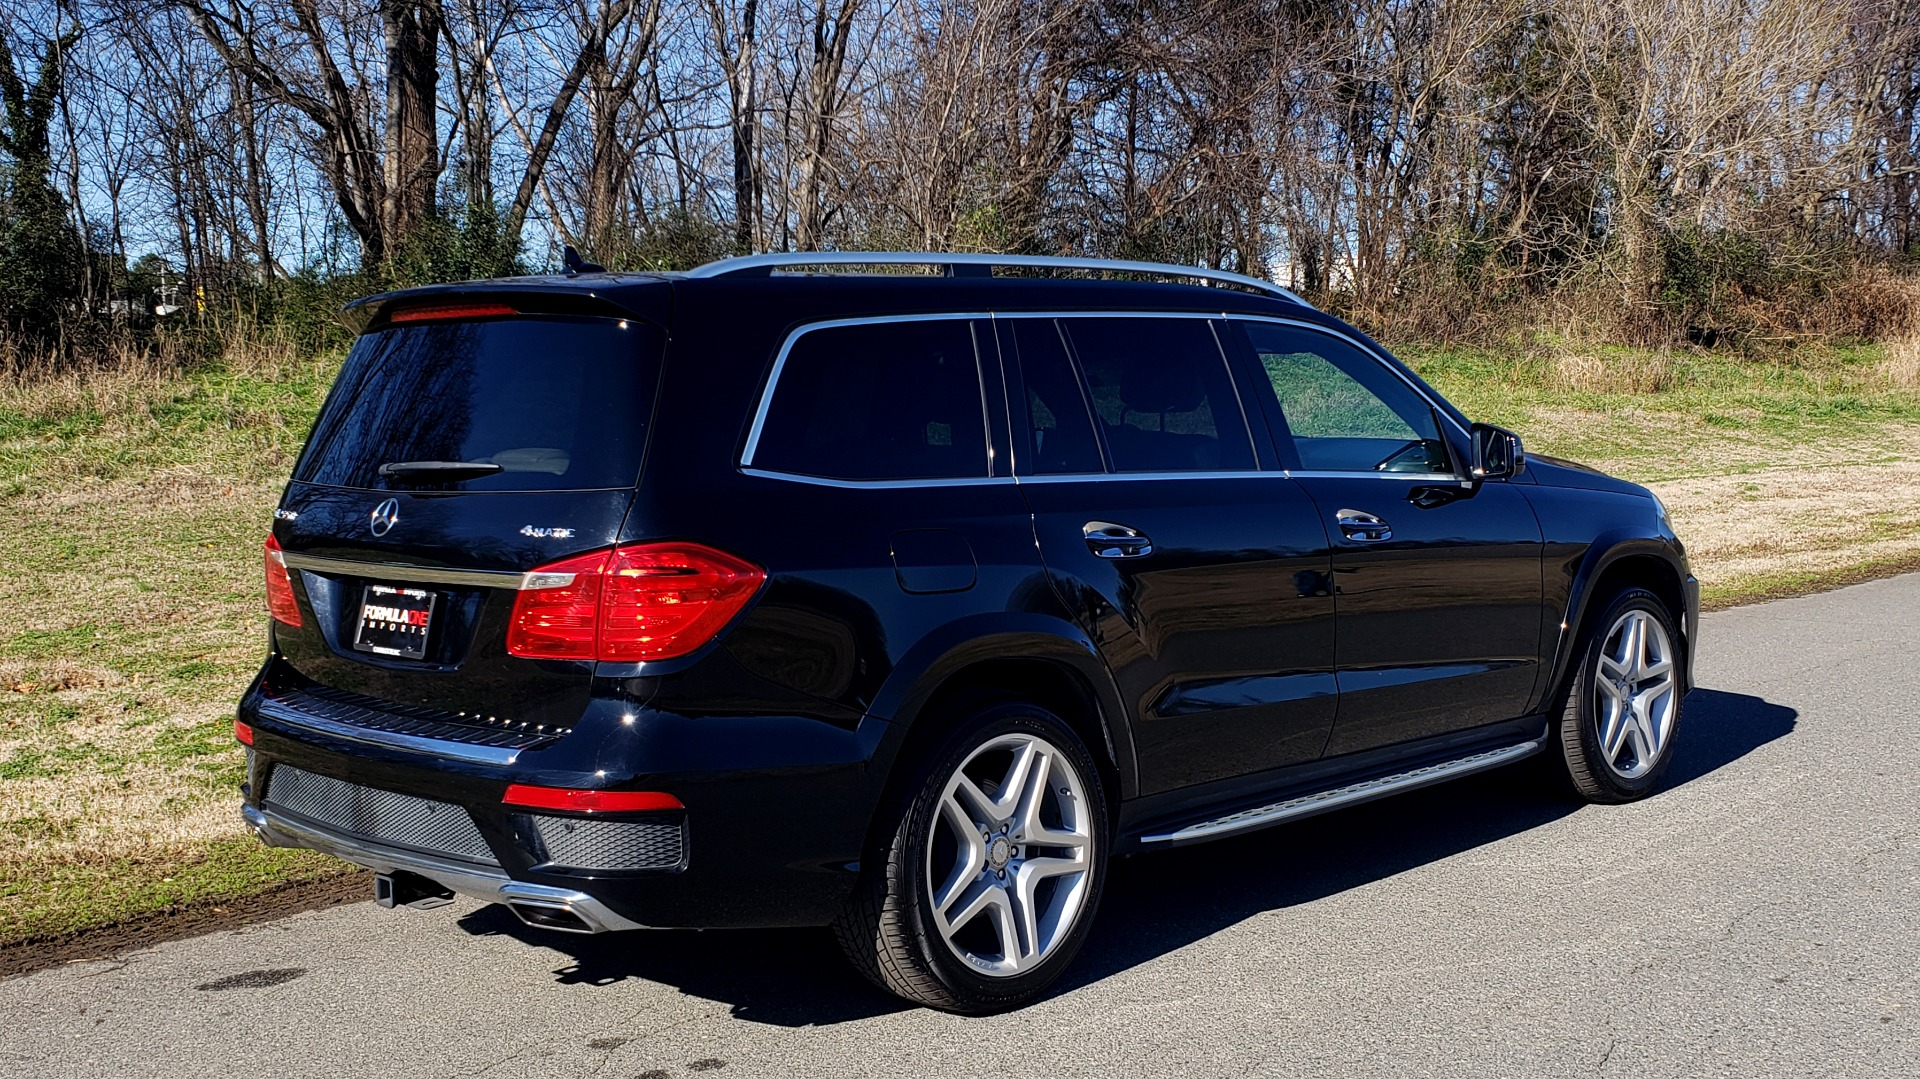 Used 2015 Mercedes-Benz GL-Class GL 550 4MATIC / DRVR ASST / PANO-ROOF / DESIGNO / REARVIEW for sale Sold at Formula Imports in Charlotte NC 28227 6